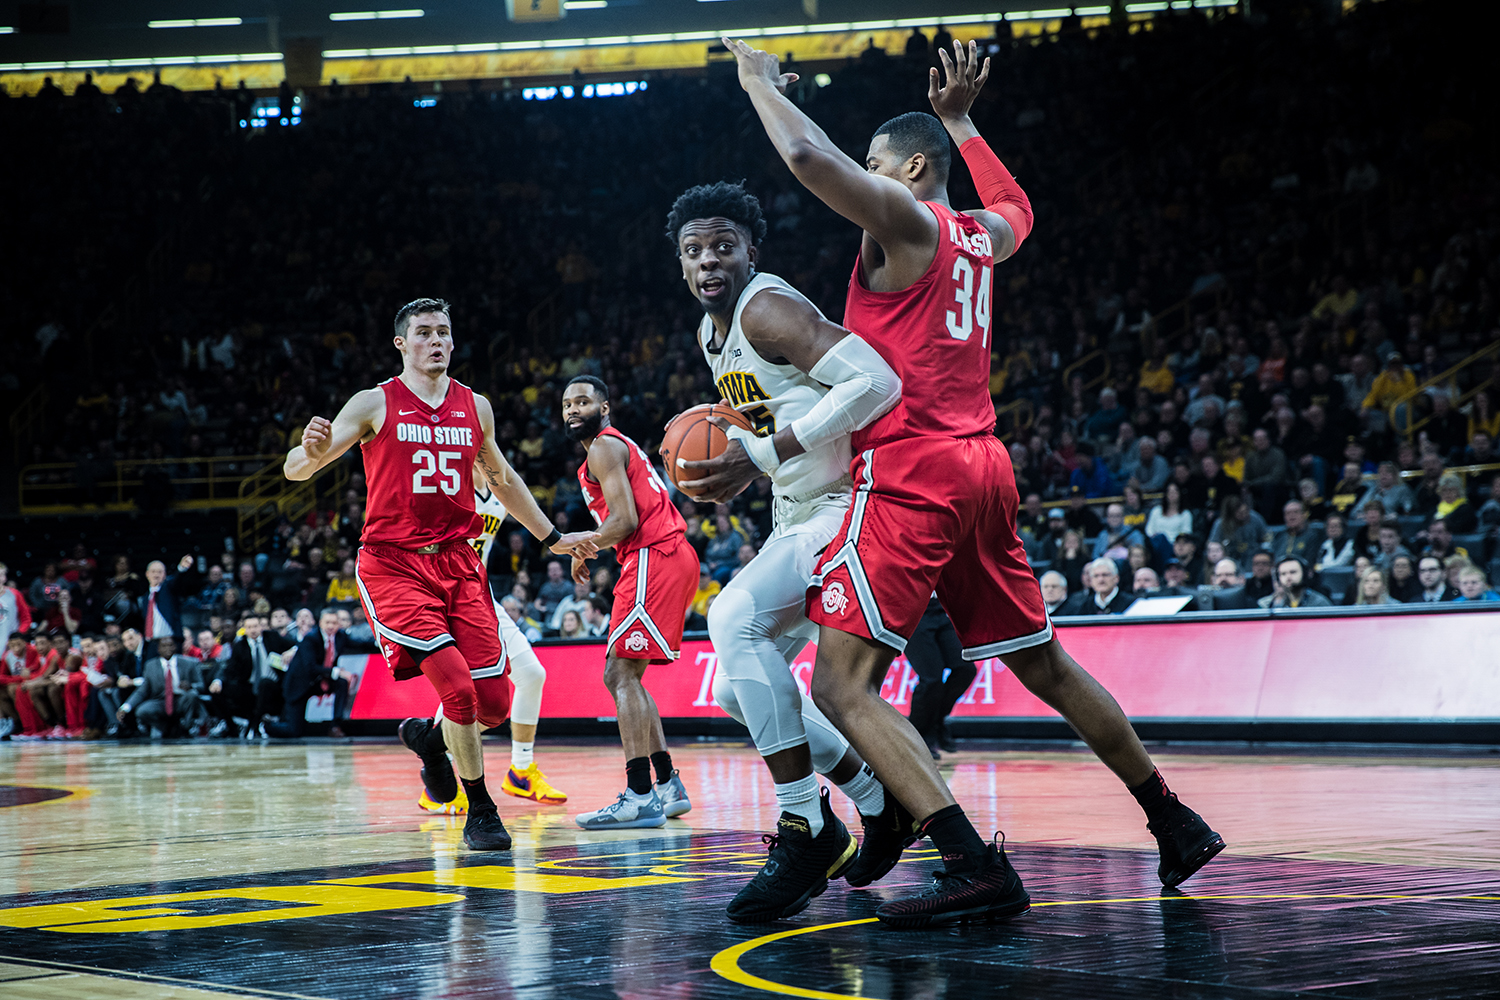 Iowa forward Tyler Cook drives to the net during a men's basketball matchup between Ohio State and Iowa at Carver-Hawkeye Arena on Saturday, January 12, 2019.